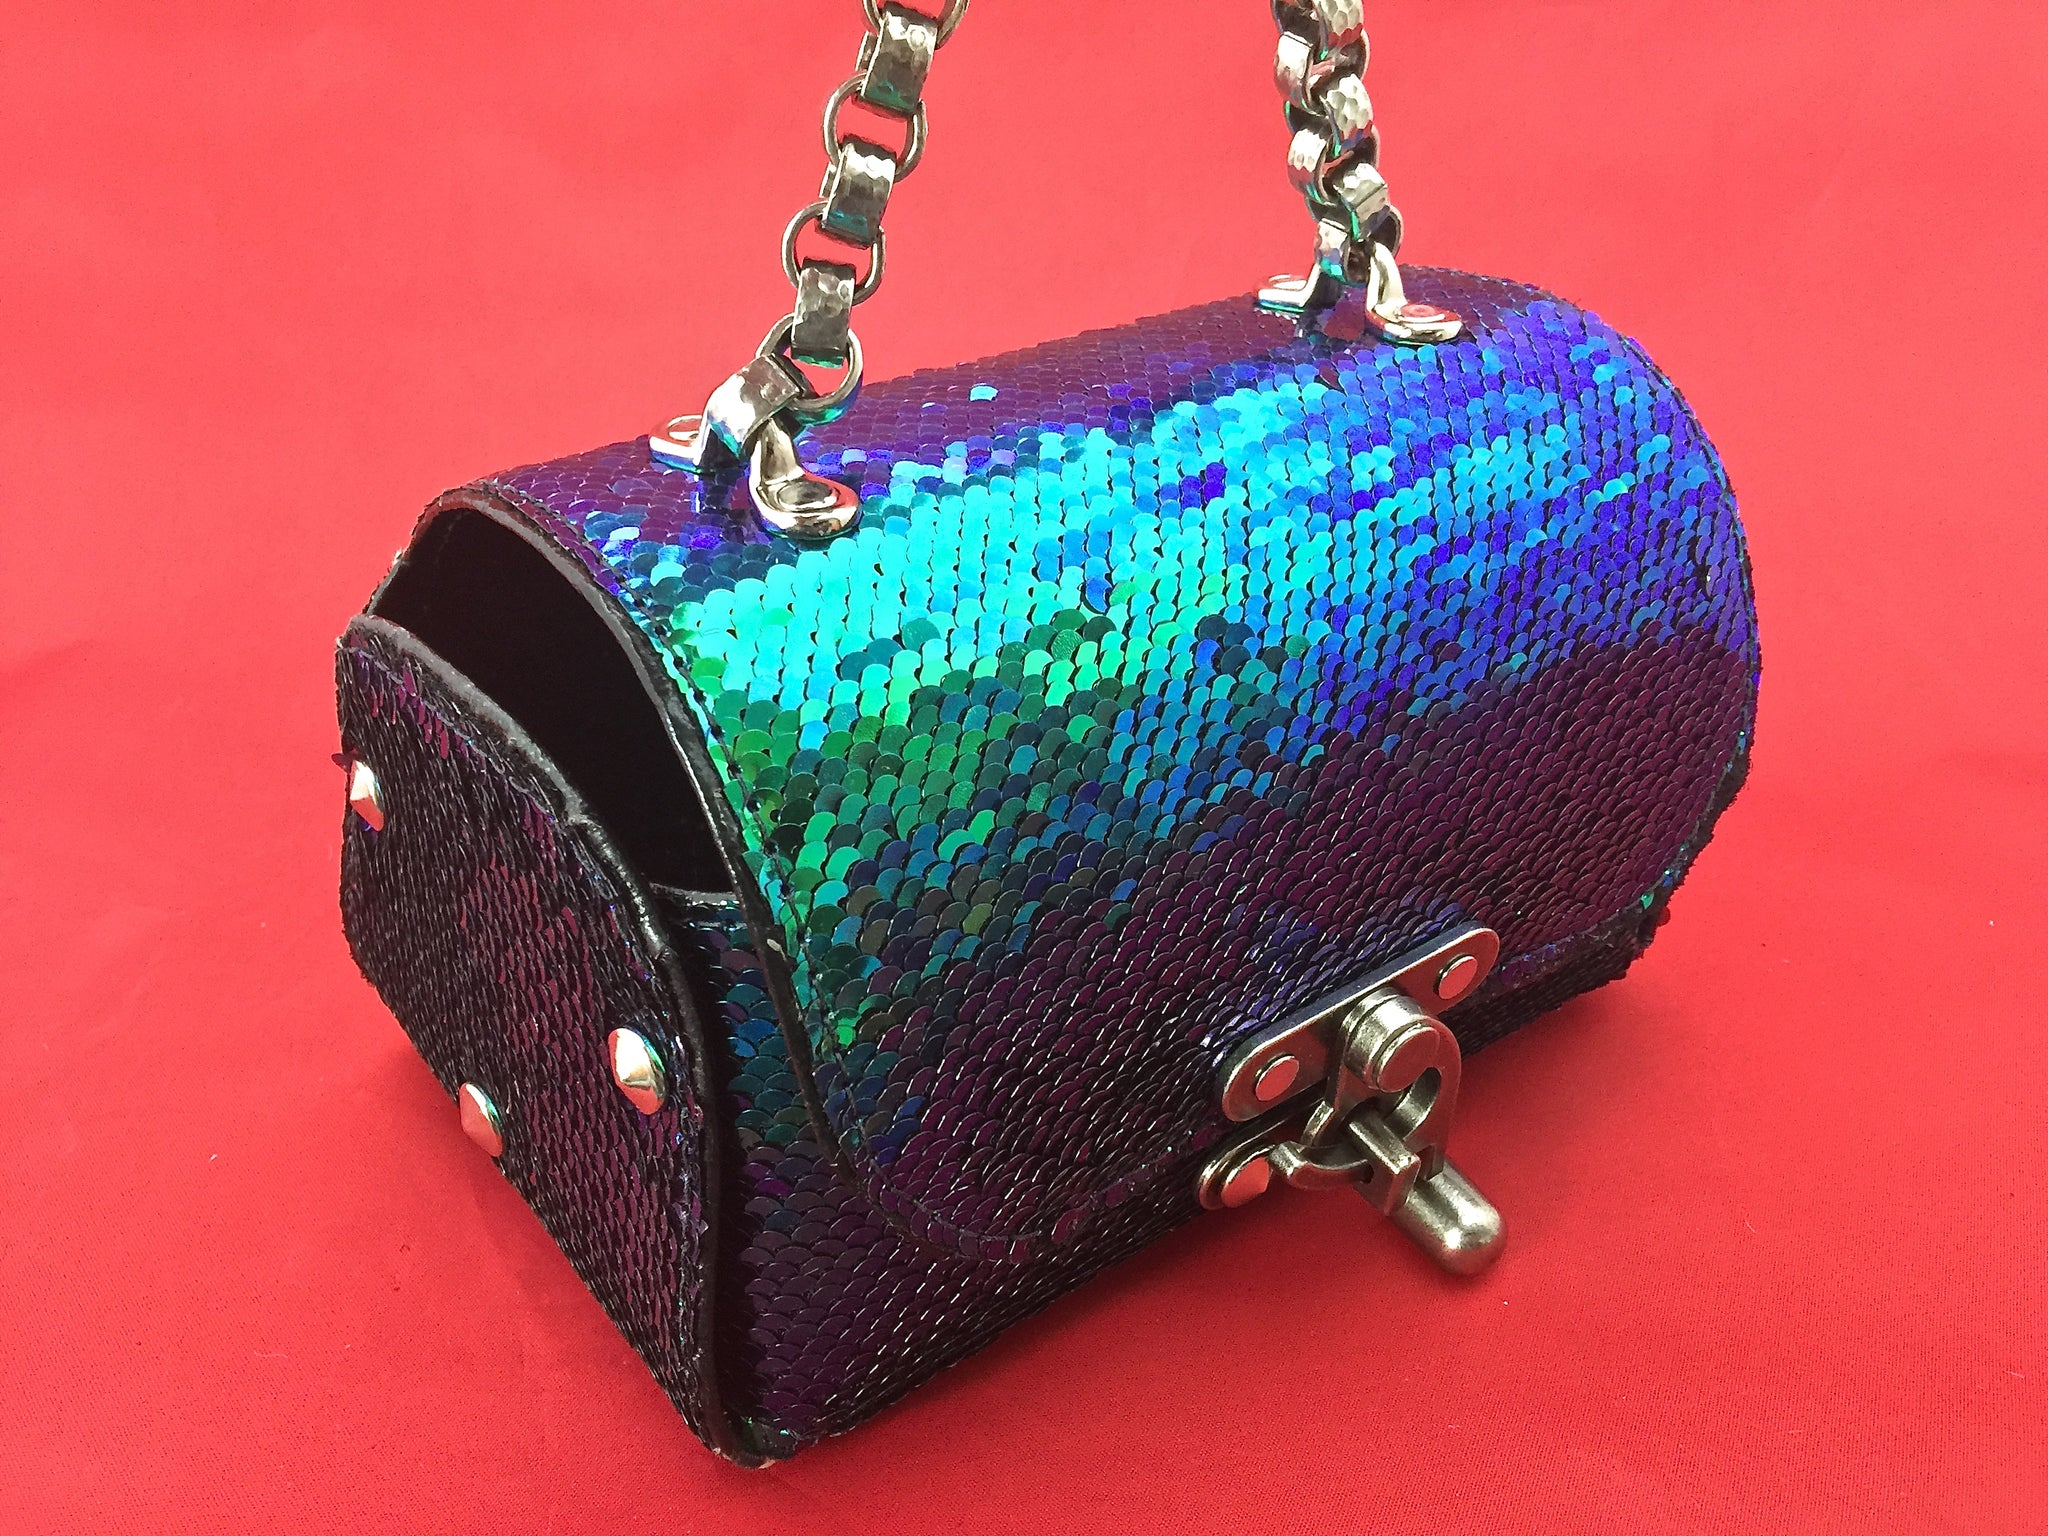 Nyet Jewelry The Siren Call leather and sequins lunch box evening bag Silver